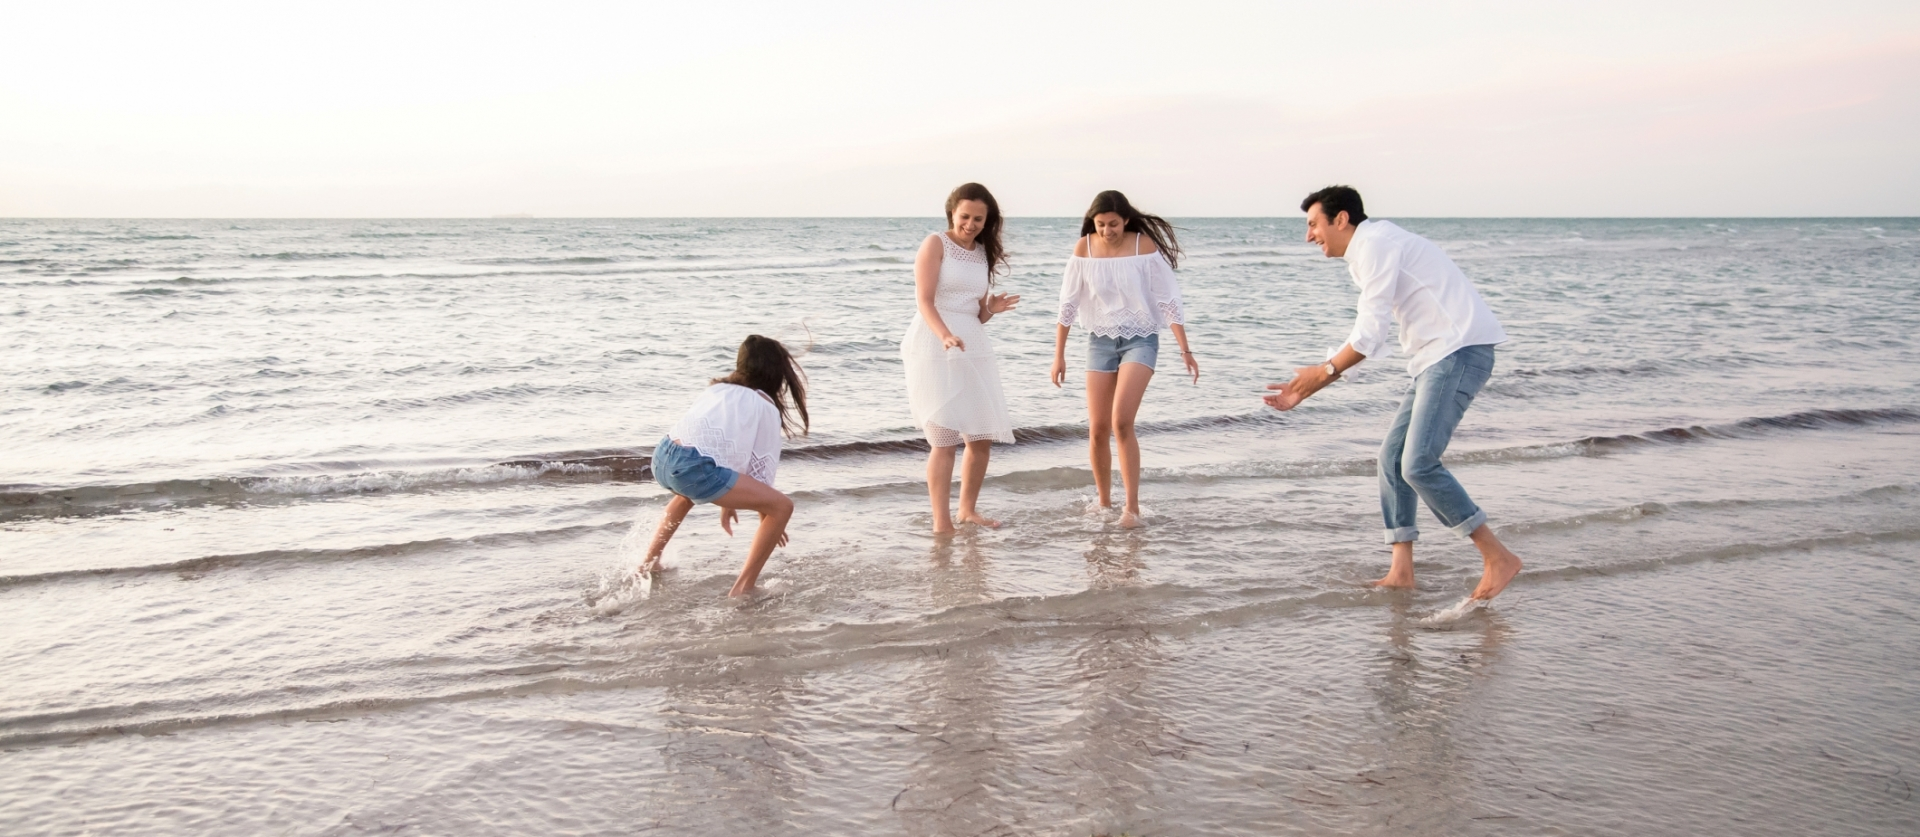 A photo of a family playing on the beach - adelaide